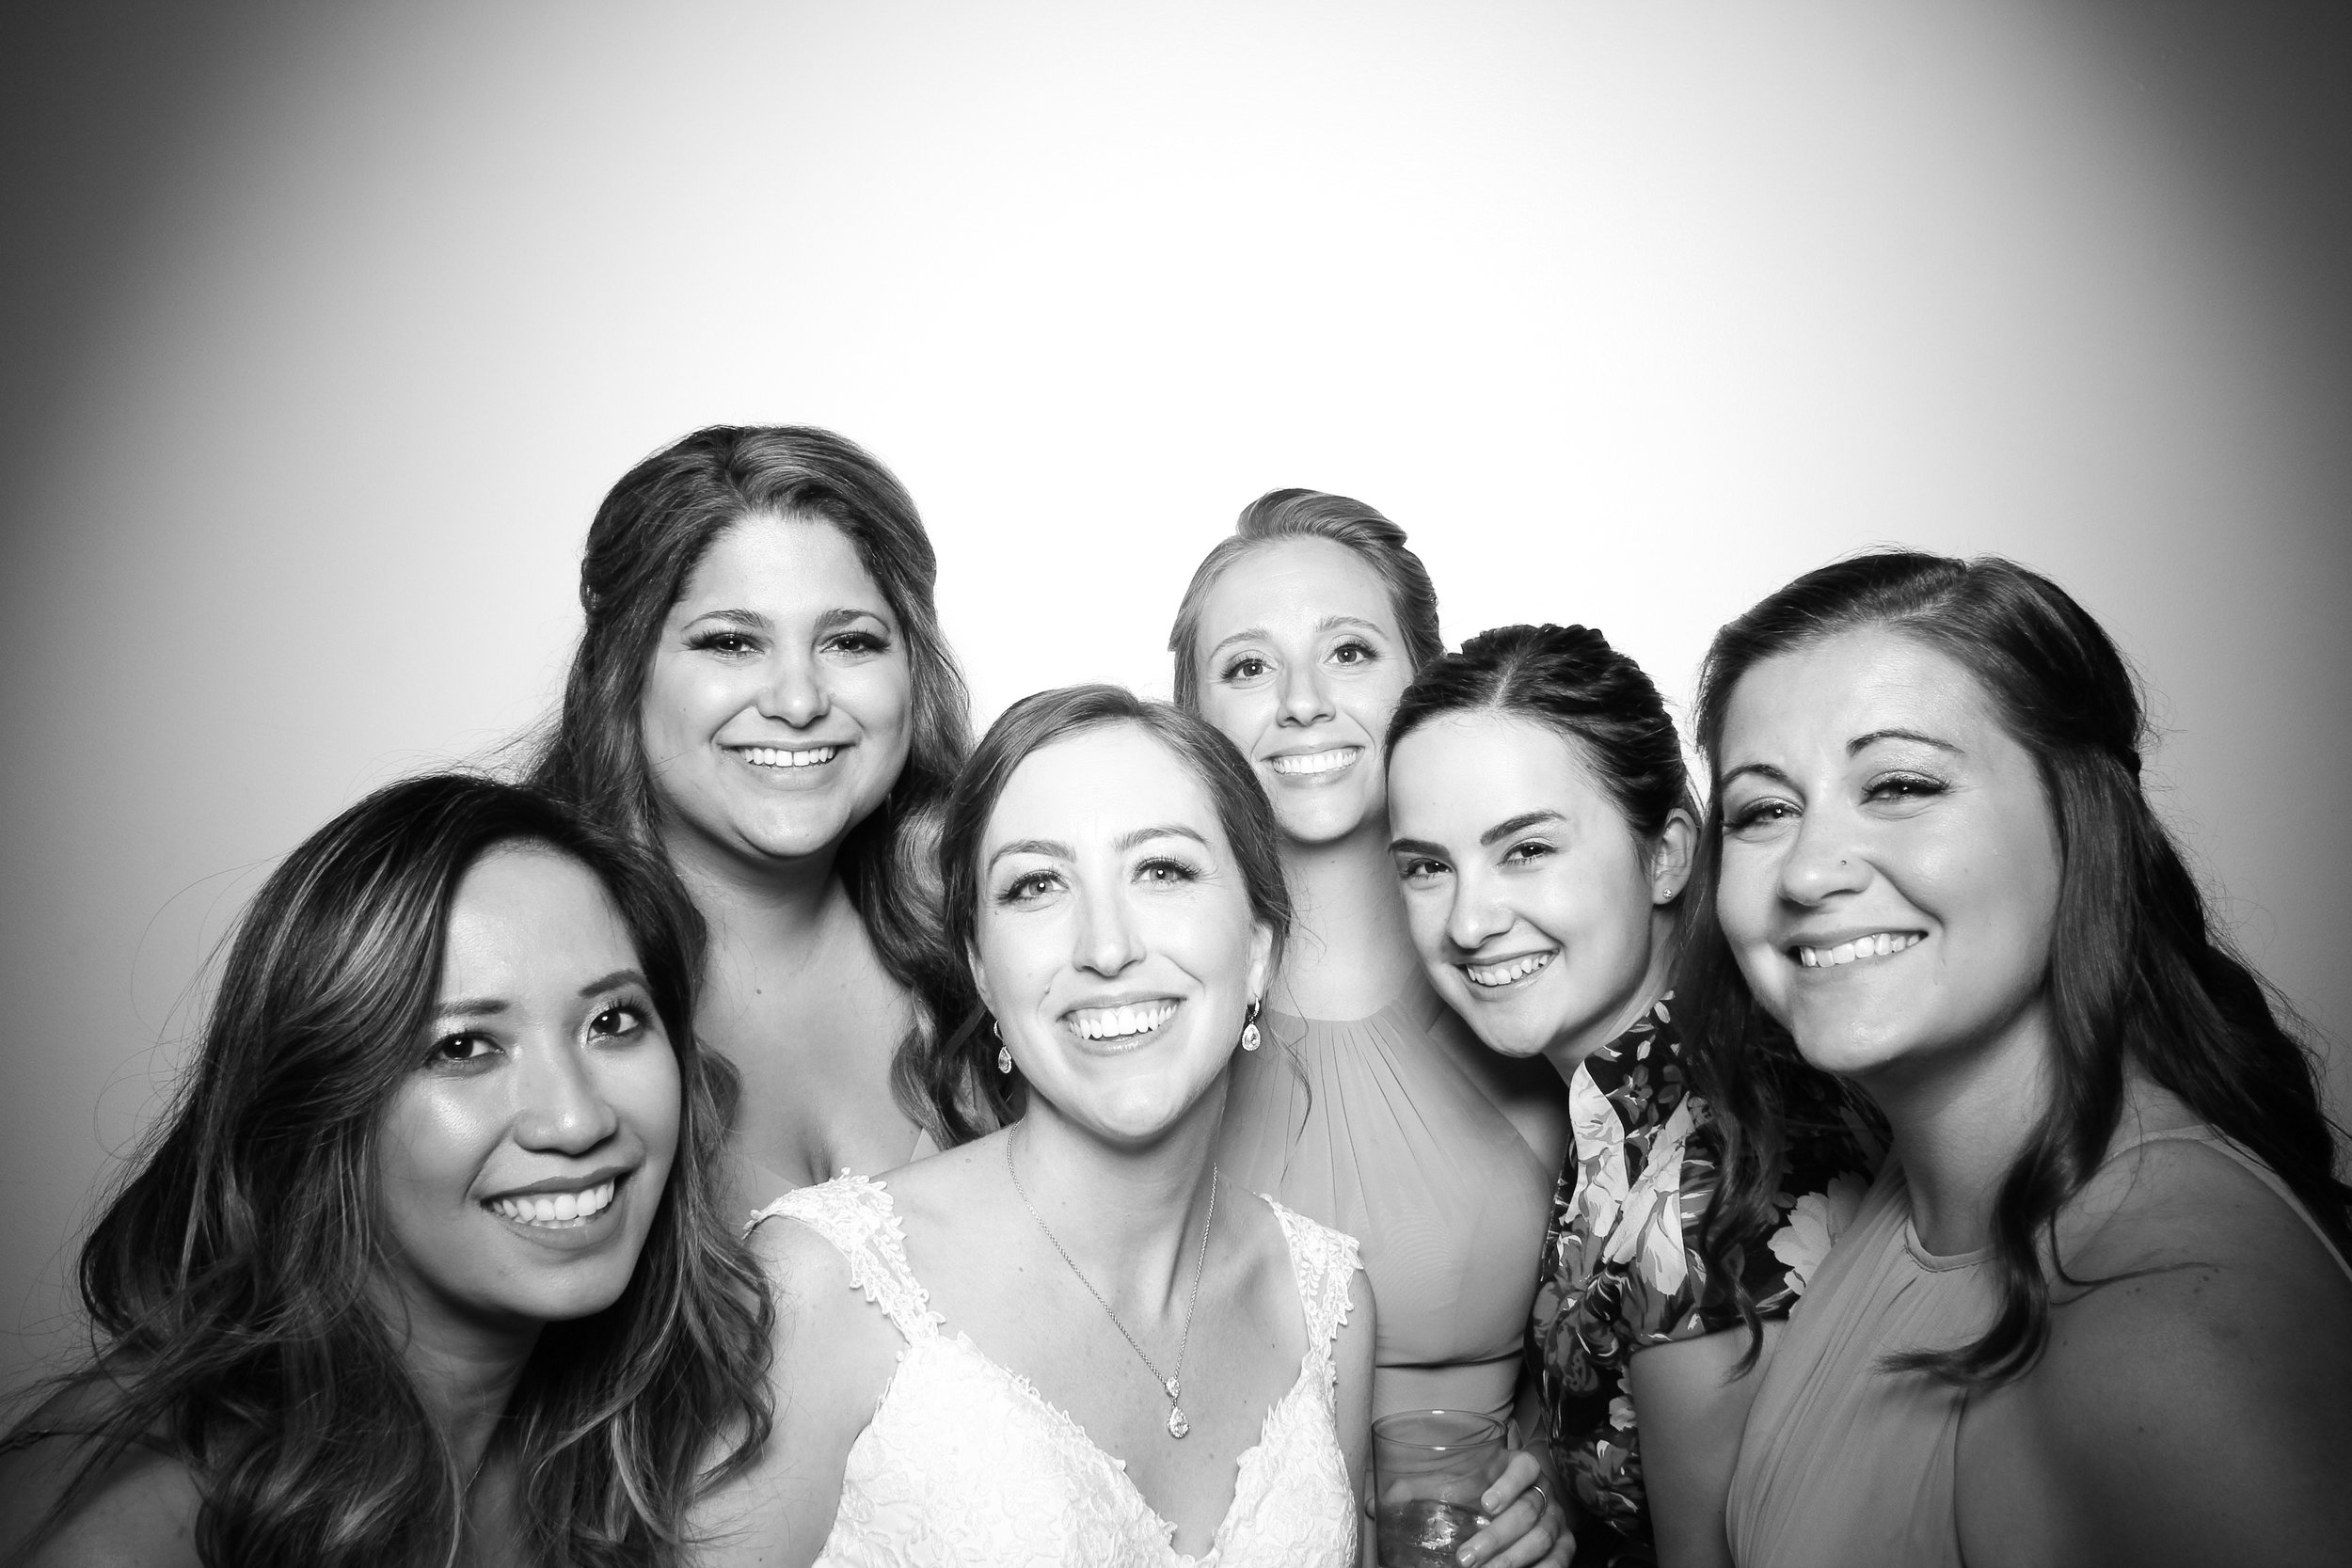 Chicago_Vintage_Wedding_Photobooth_Ravenswood_09.jpg